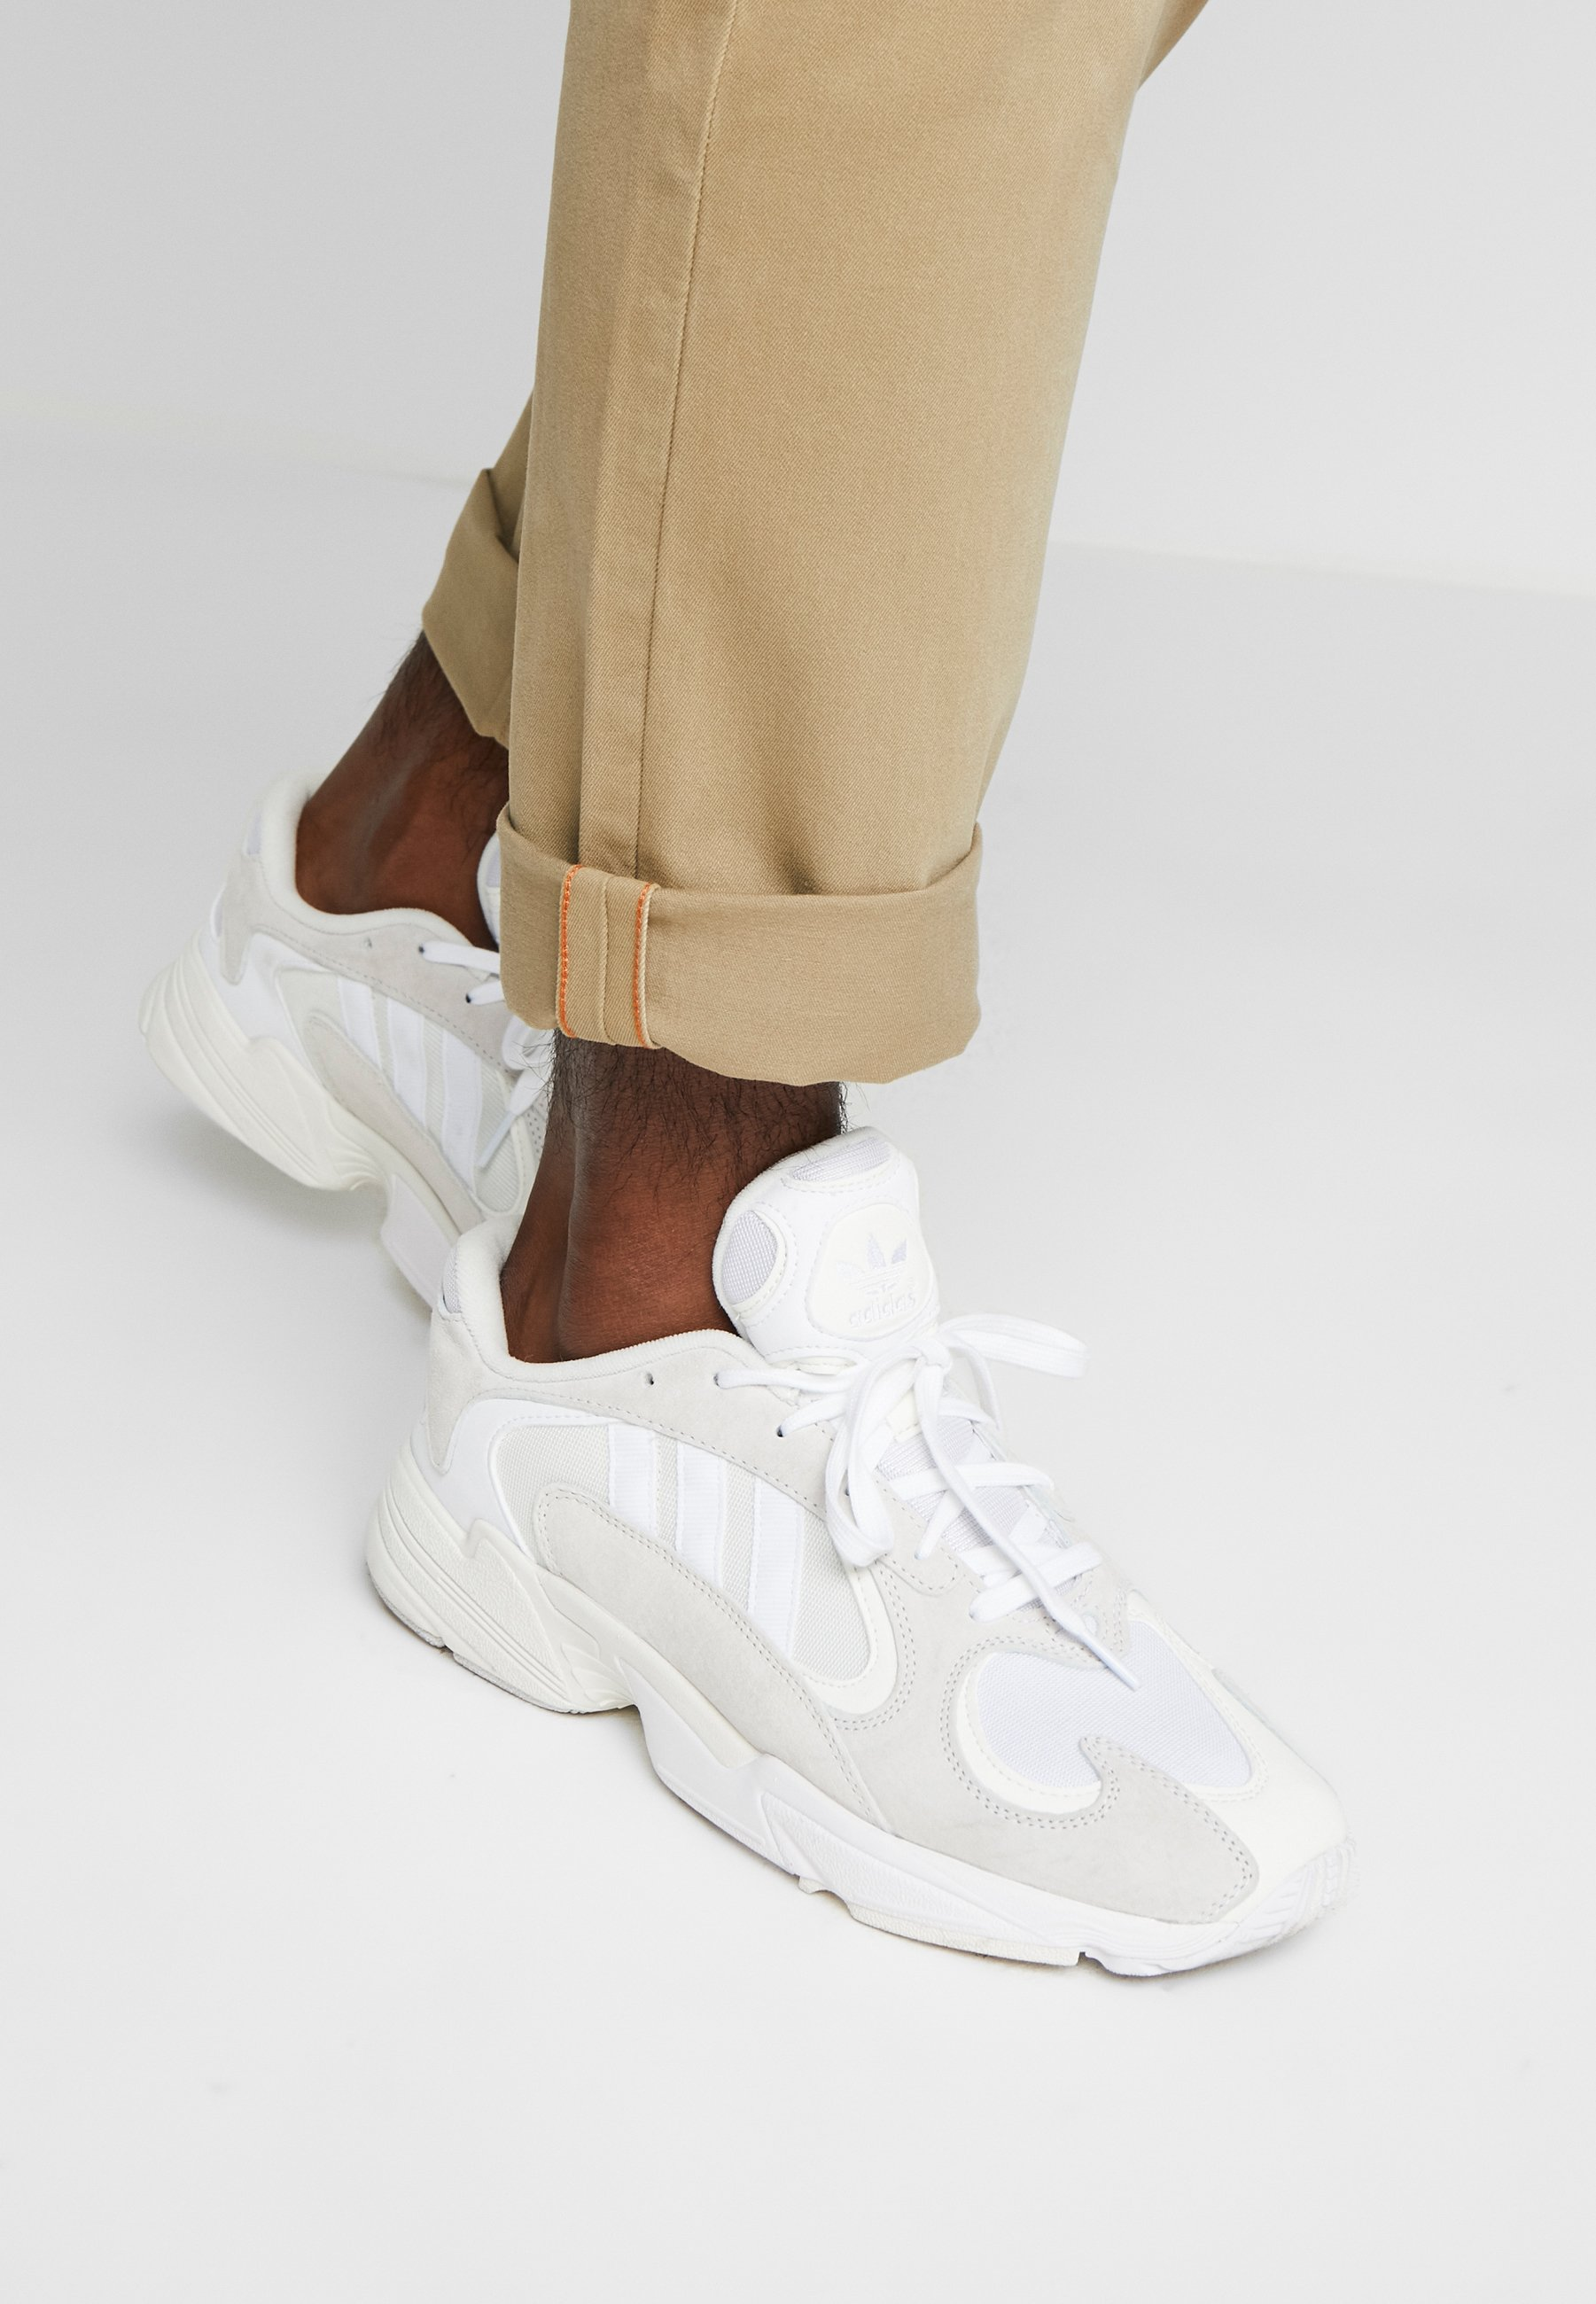 YUNG 1 TORSION SYSTEM RUNNING STYLE SHOES Sneaker low cloud whitefootwear white